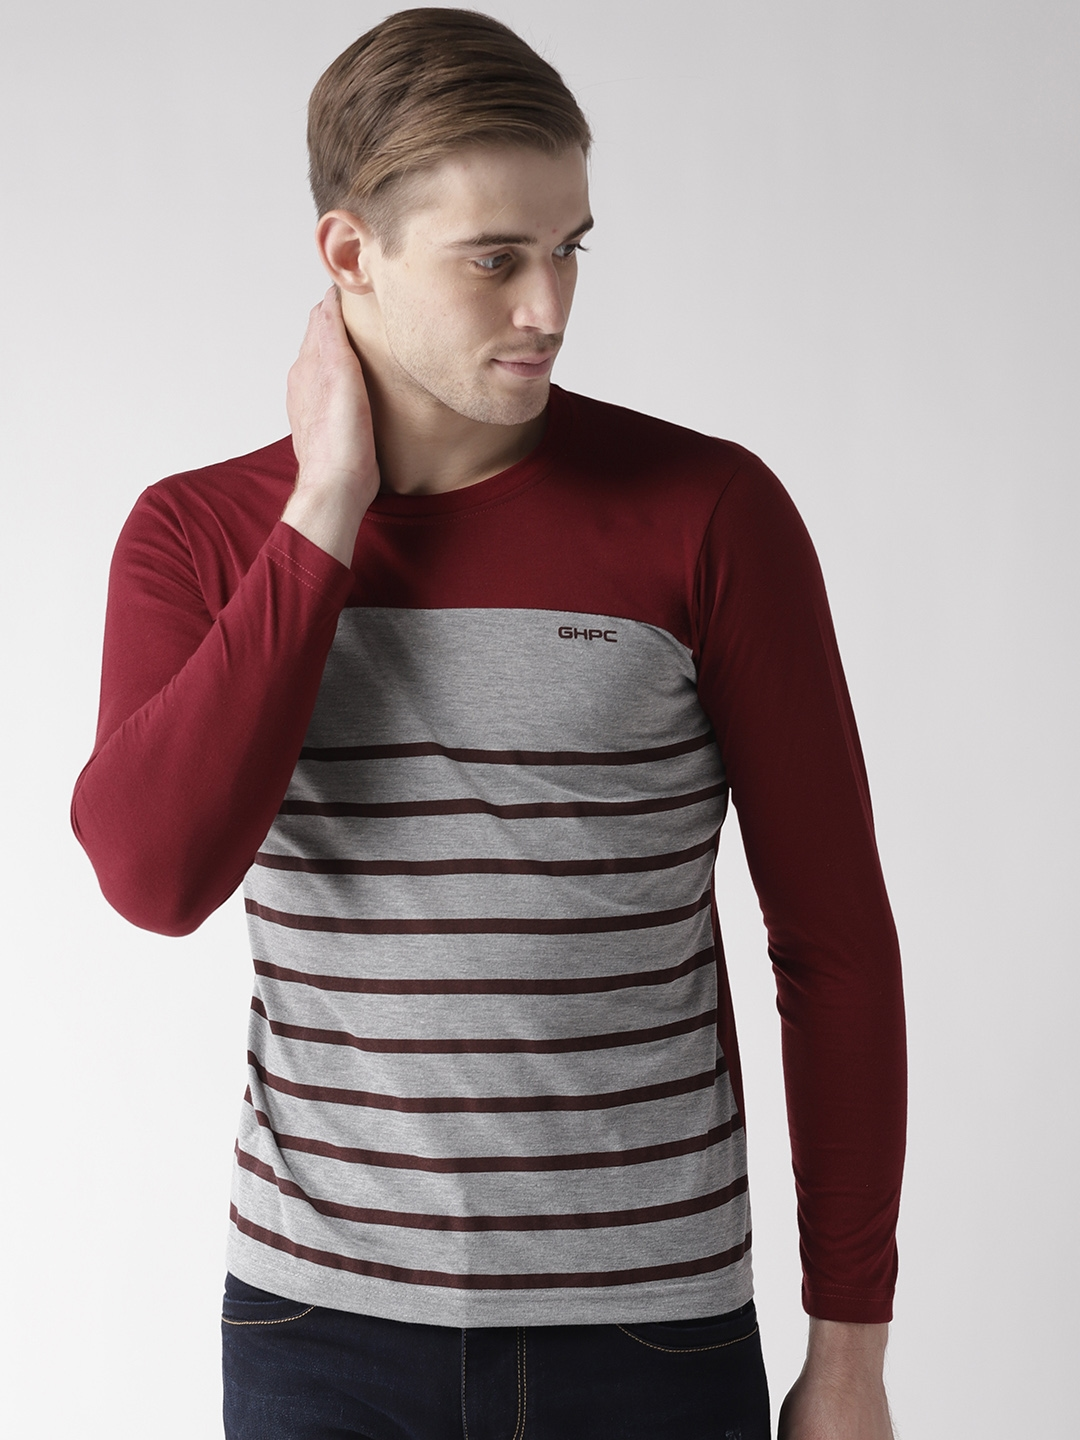 GHPC Men Grey Melange   Maroon Striped Round Neck T shirt